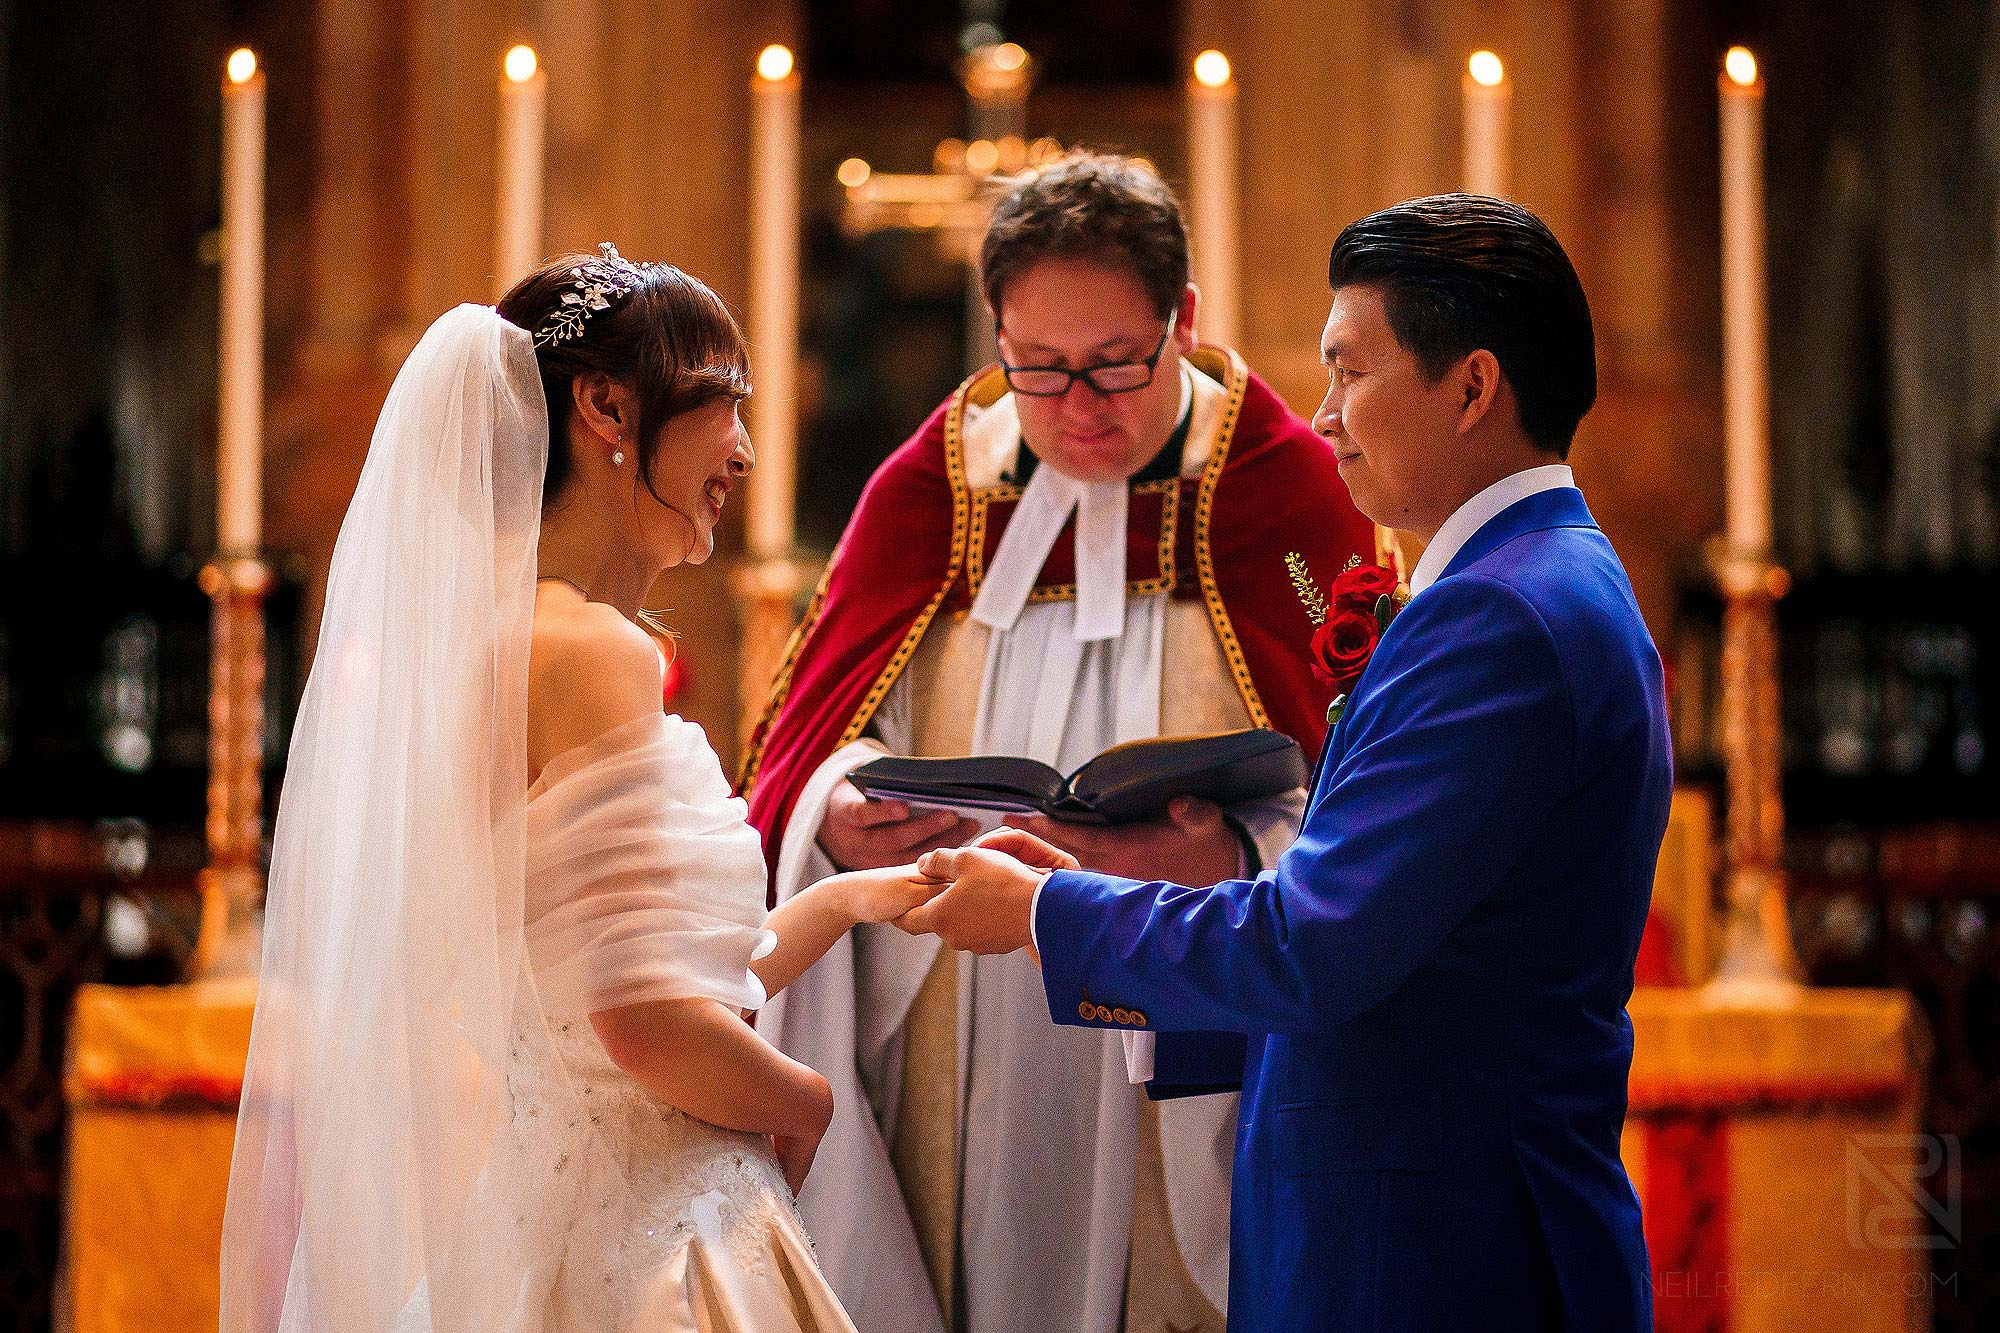 exchanging wedding vows during ceremony at St Bartholomew-the-Great in London